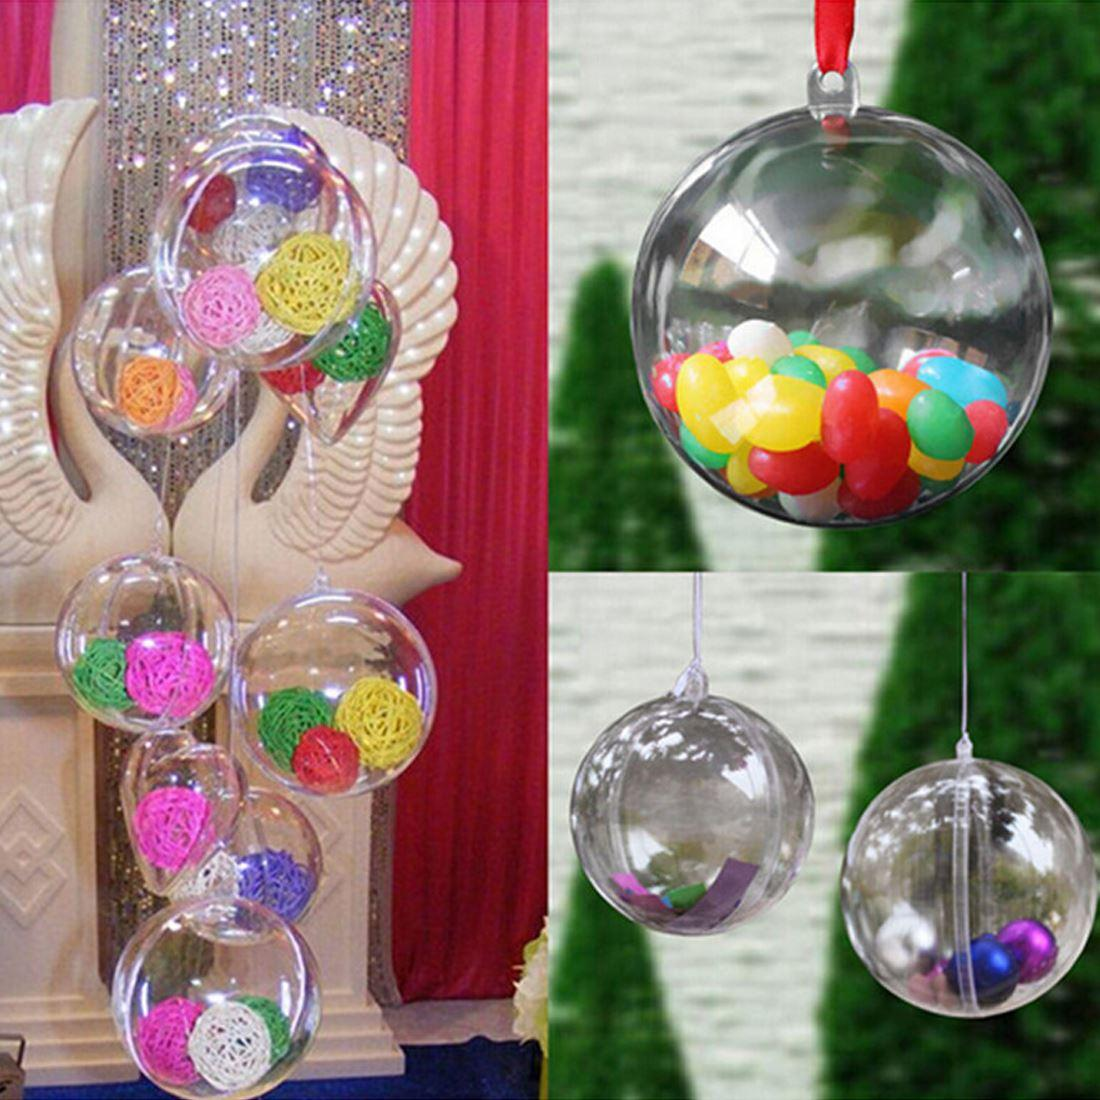 Lovely Clear Candy boxes Romantic Design Christmas Decorations Ball Transparent Can Open Plastic Christmas Clear Bauble Ornament